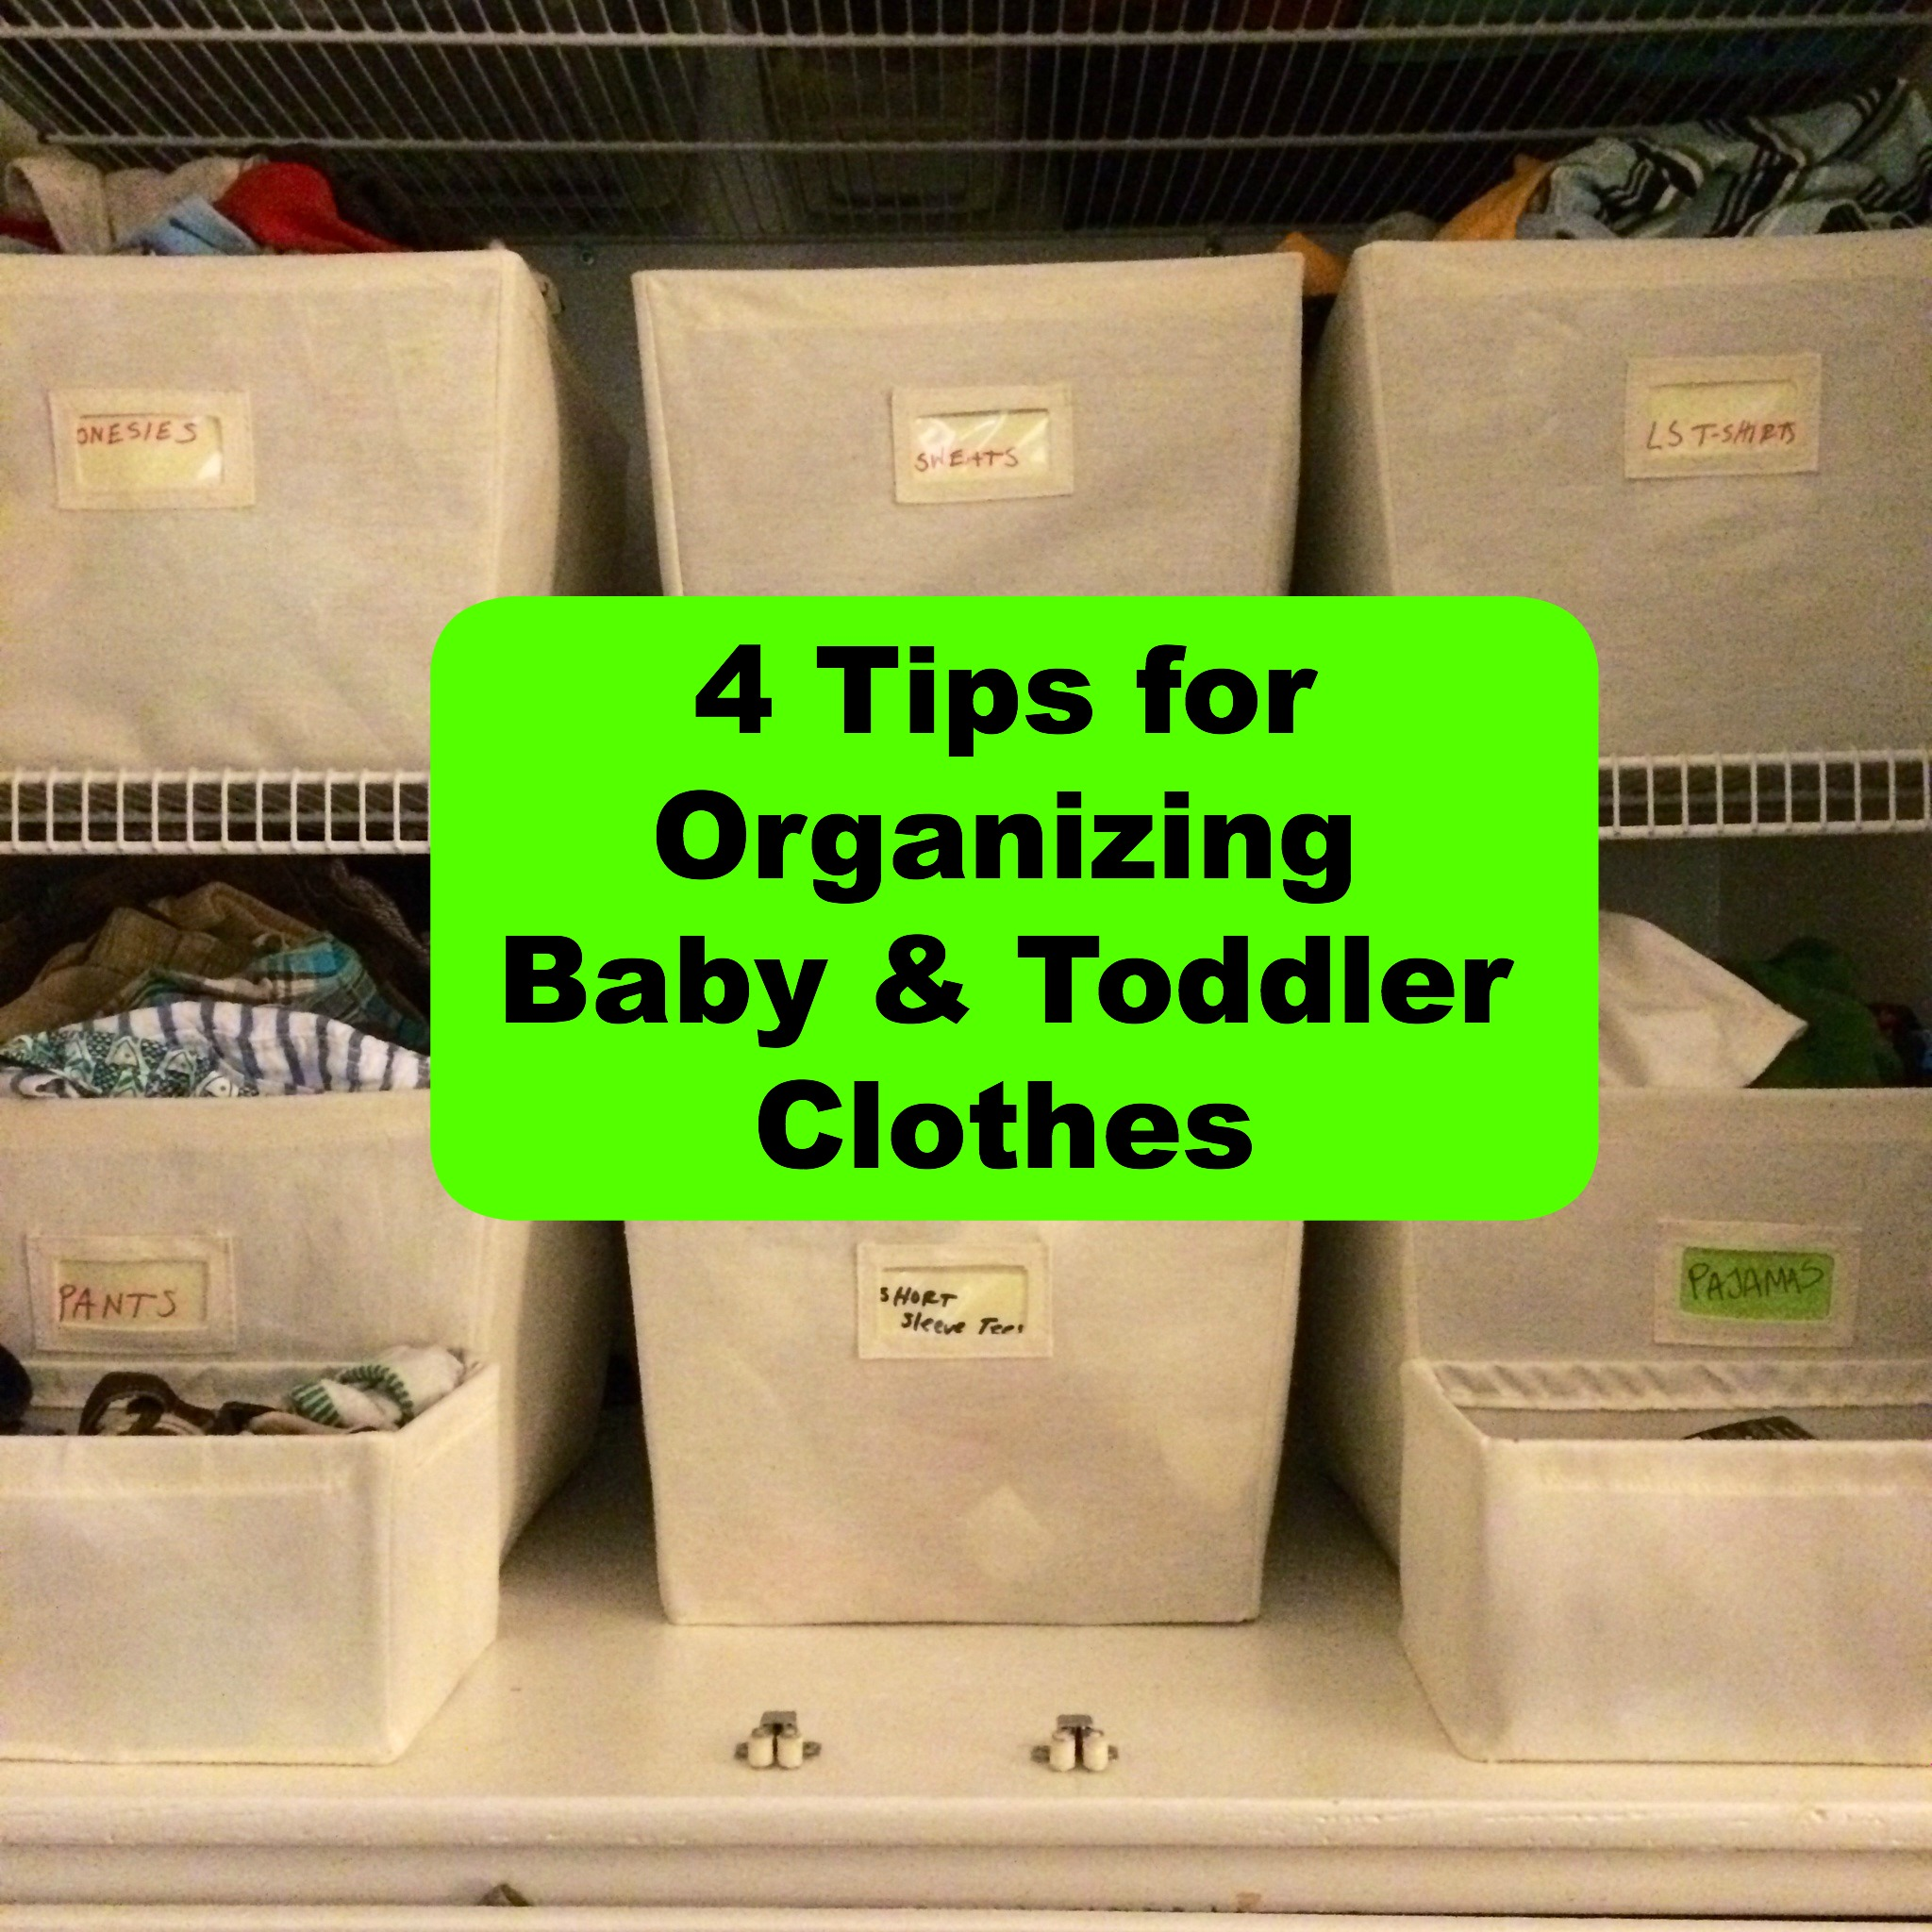 Today S Hint 4 Tips For Organizing Baby Amp Toddler Clothes